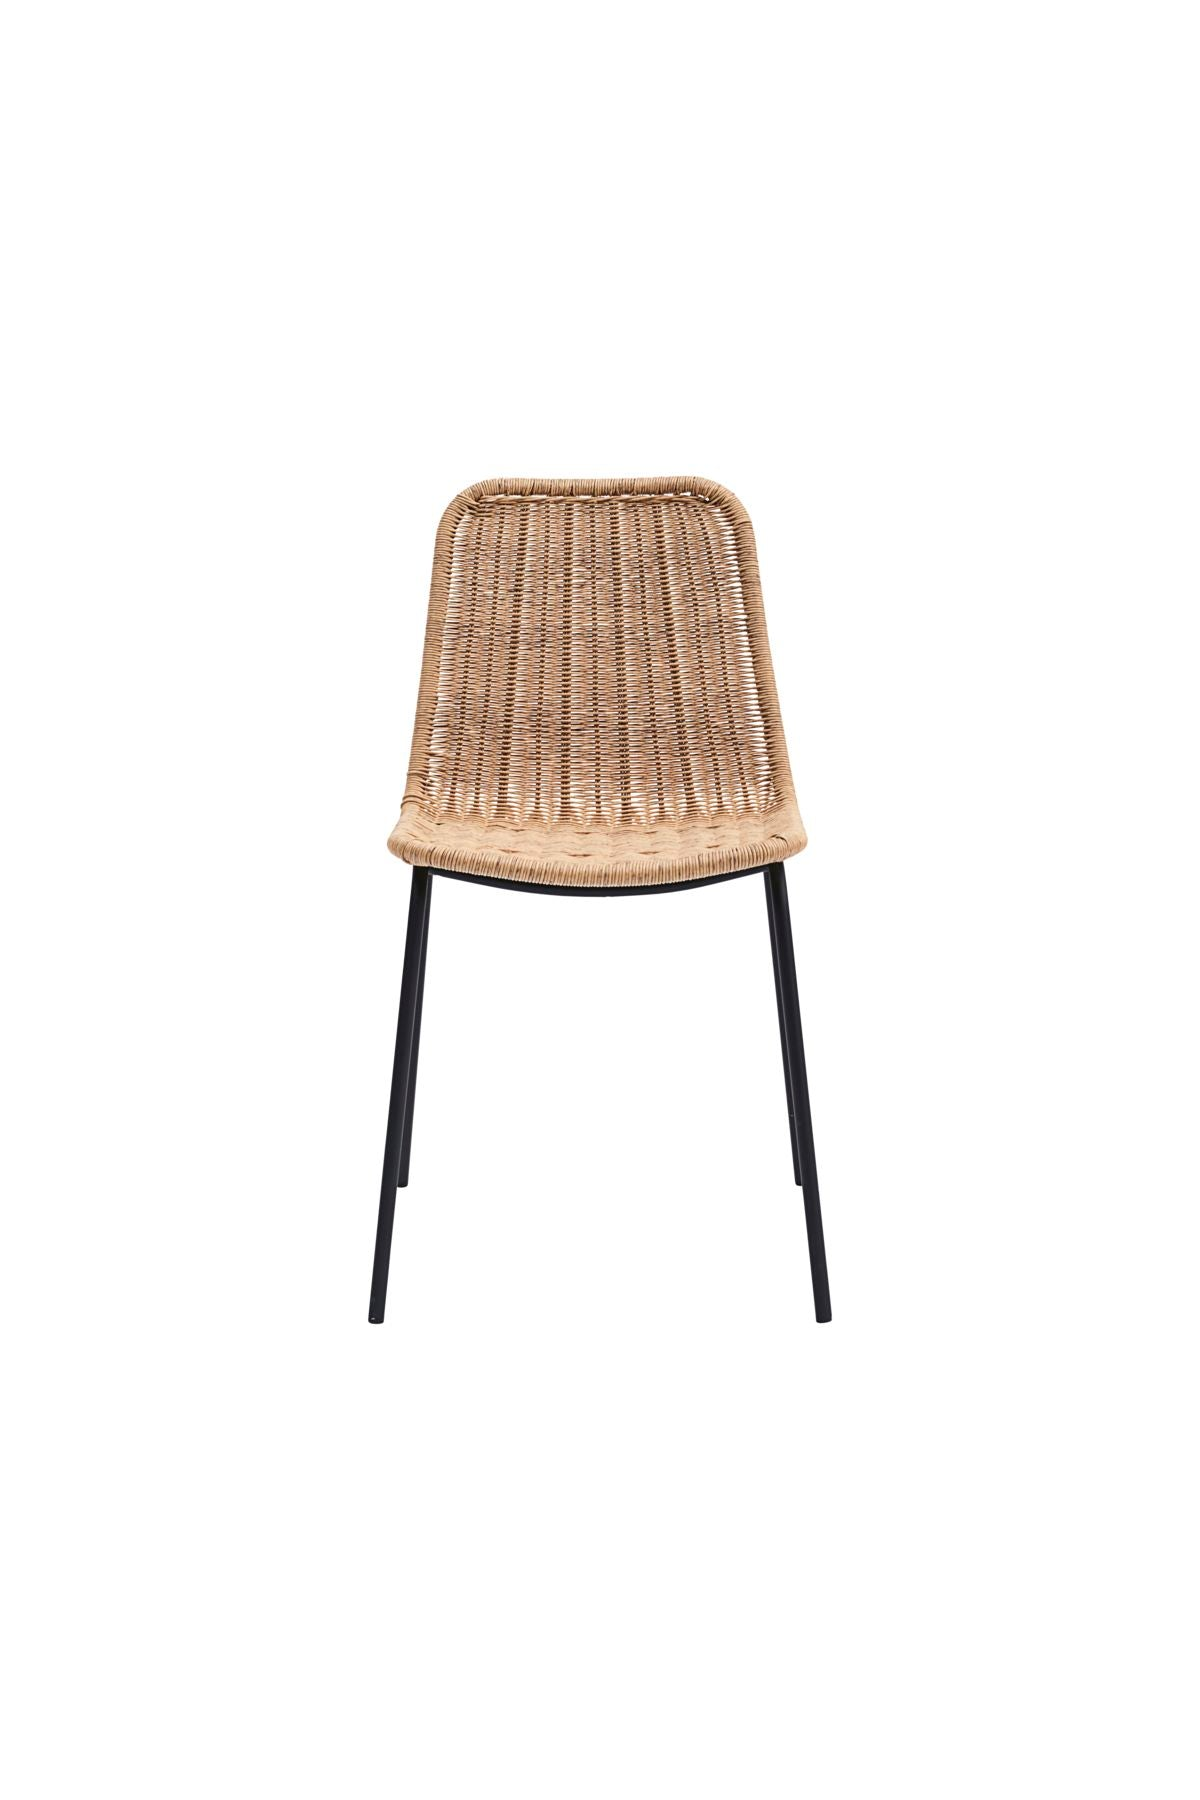 hapur dining chair